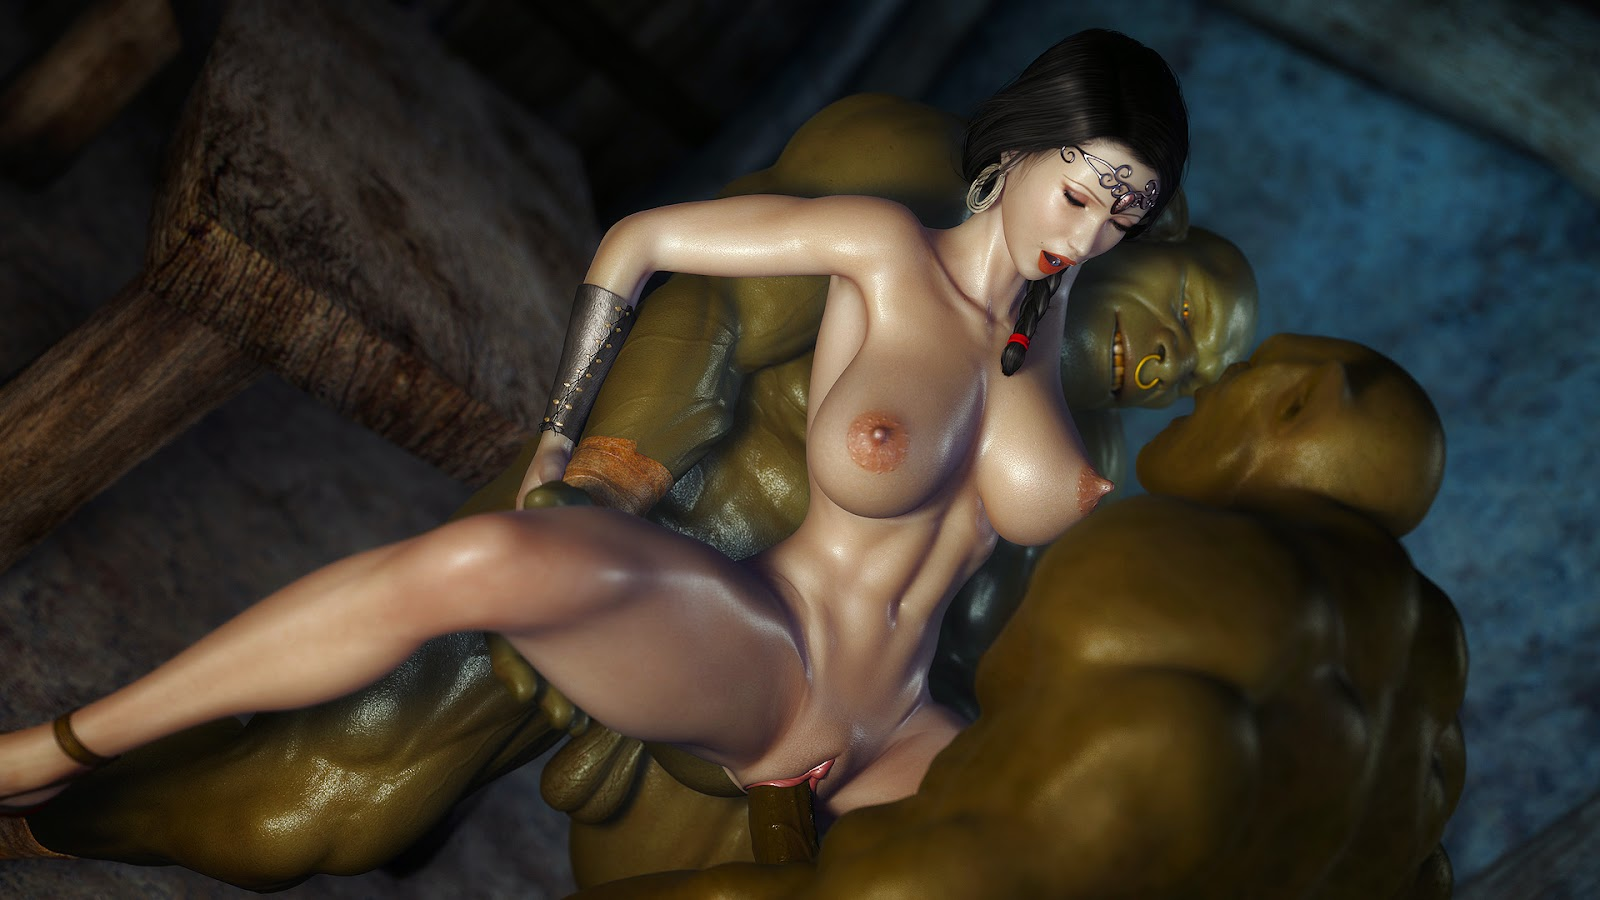 Secret of beauty orc ritual 2